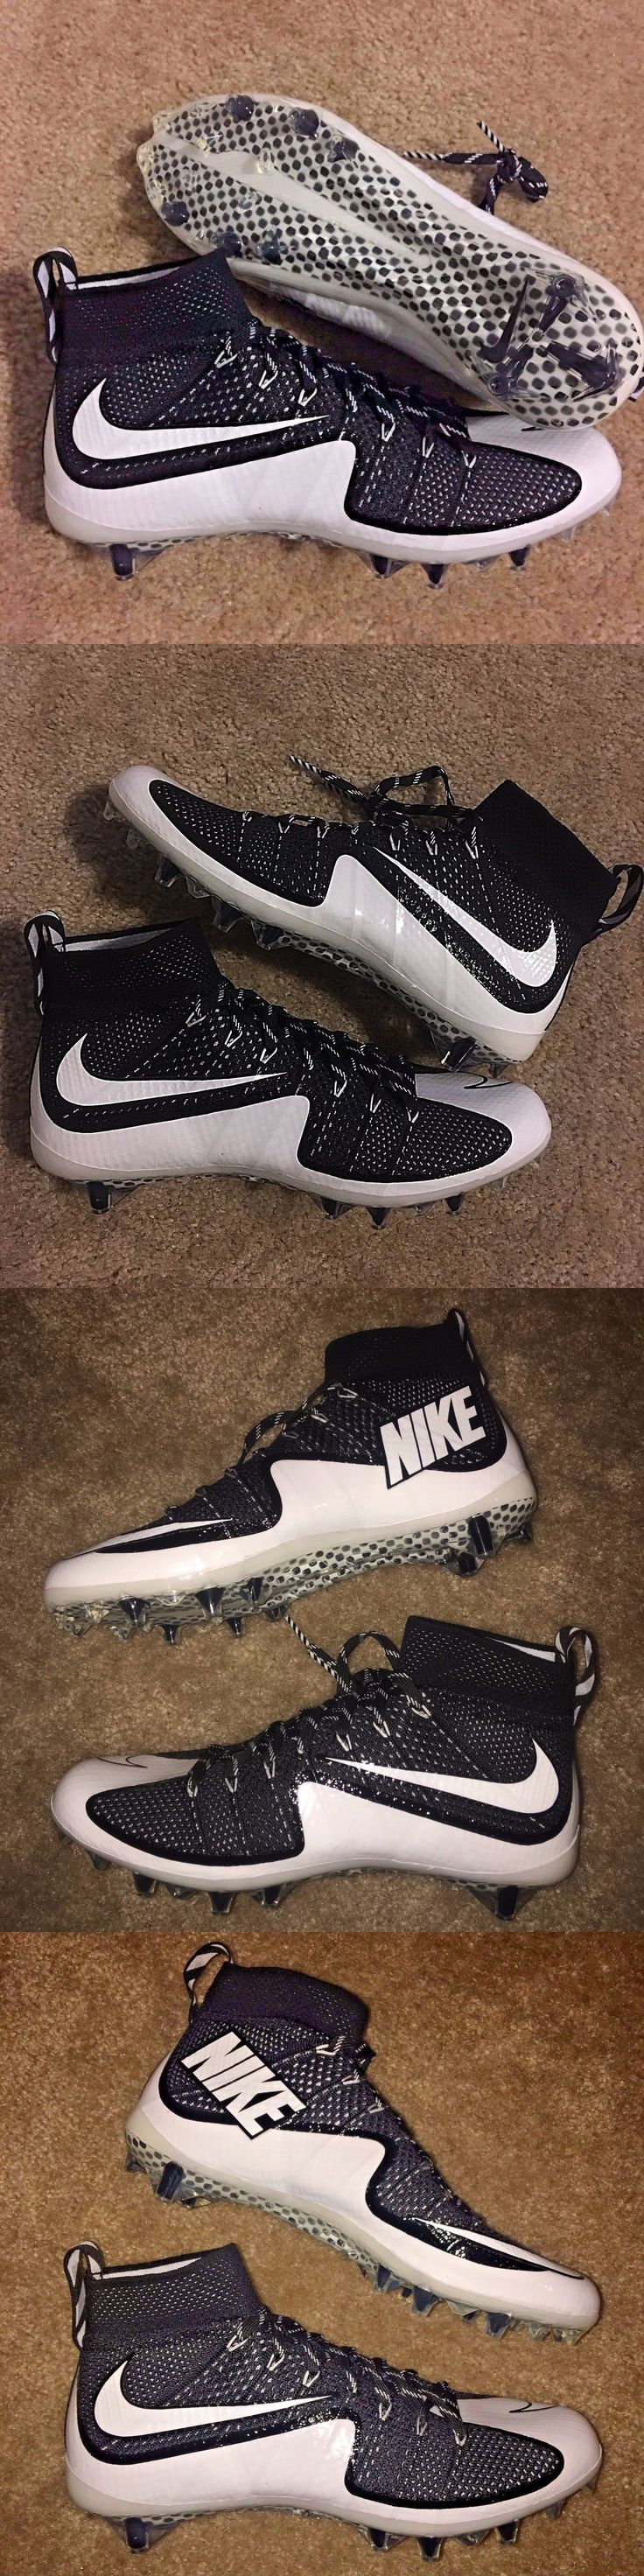 Mens 159059: Oreo Nike Flyknit Vapor Untouchable Molded Football Cleats Various Sizes -> BUY IT NOW ONLY: $105 on eBay!